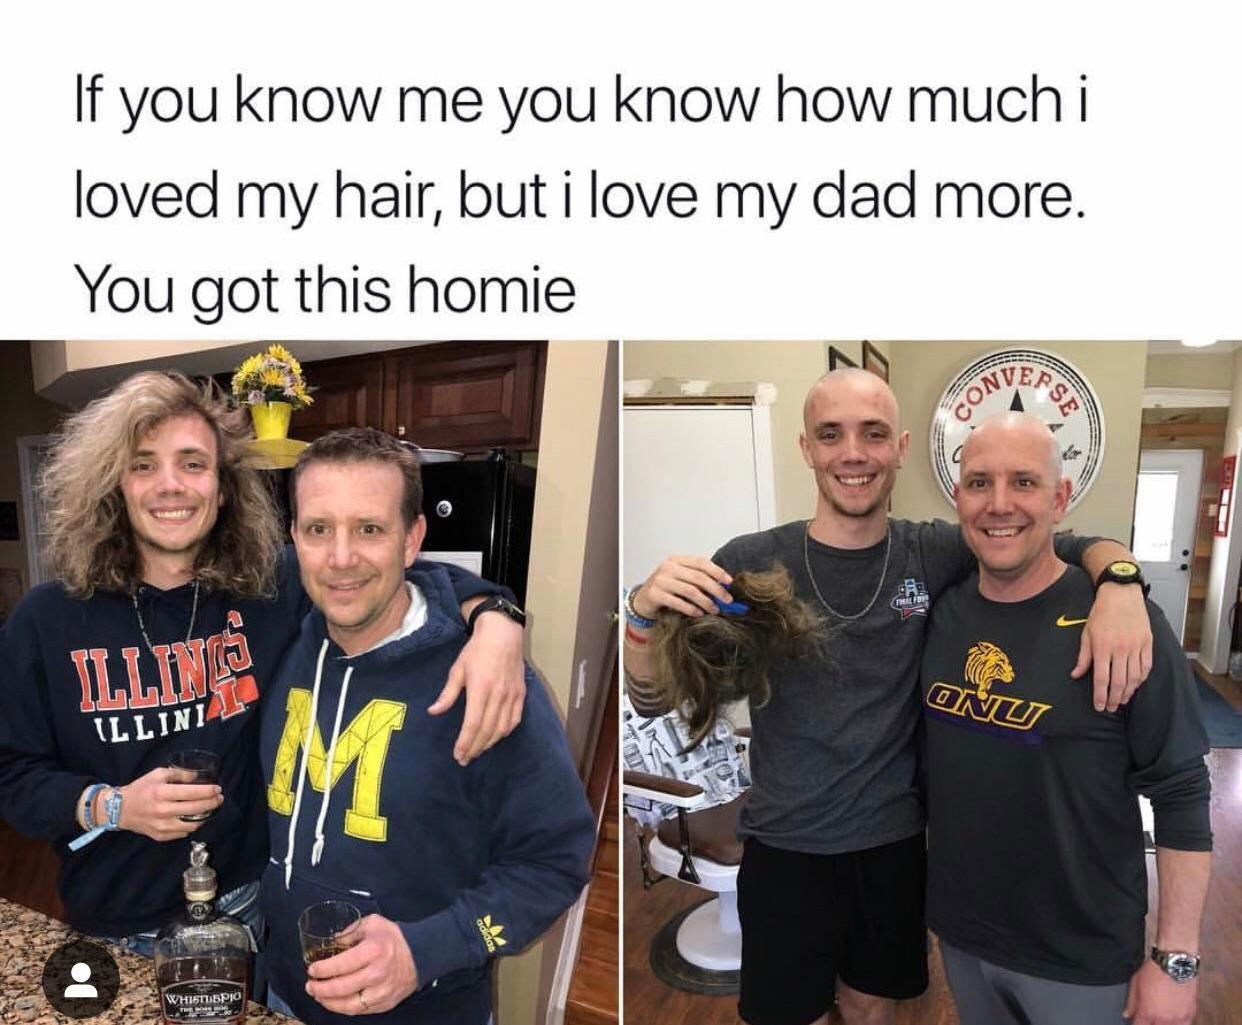 Unconditional love for dad!